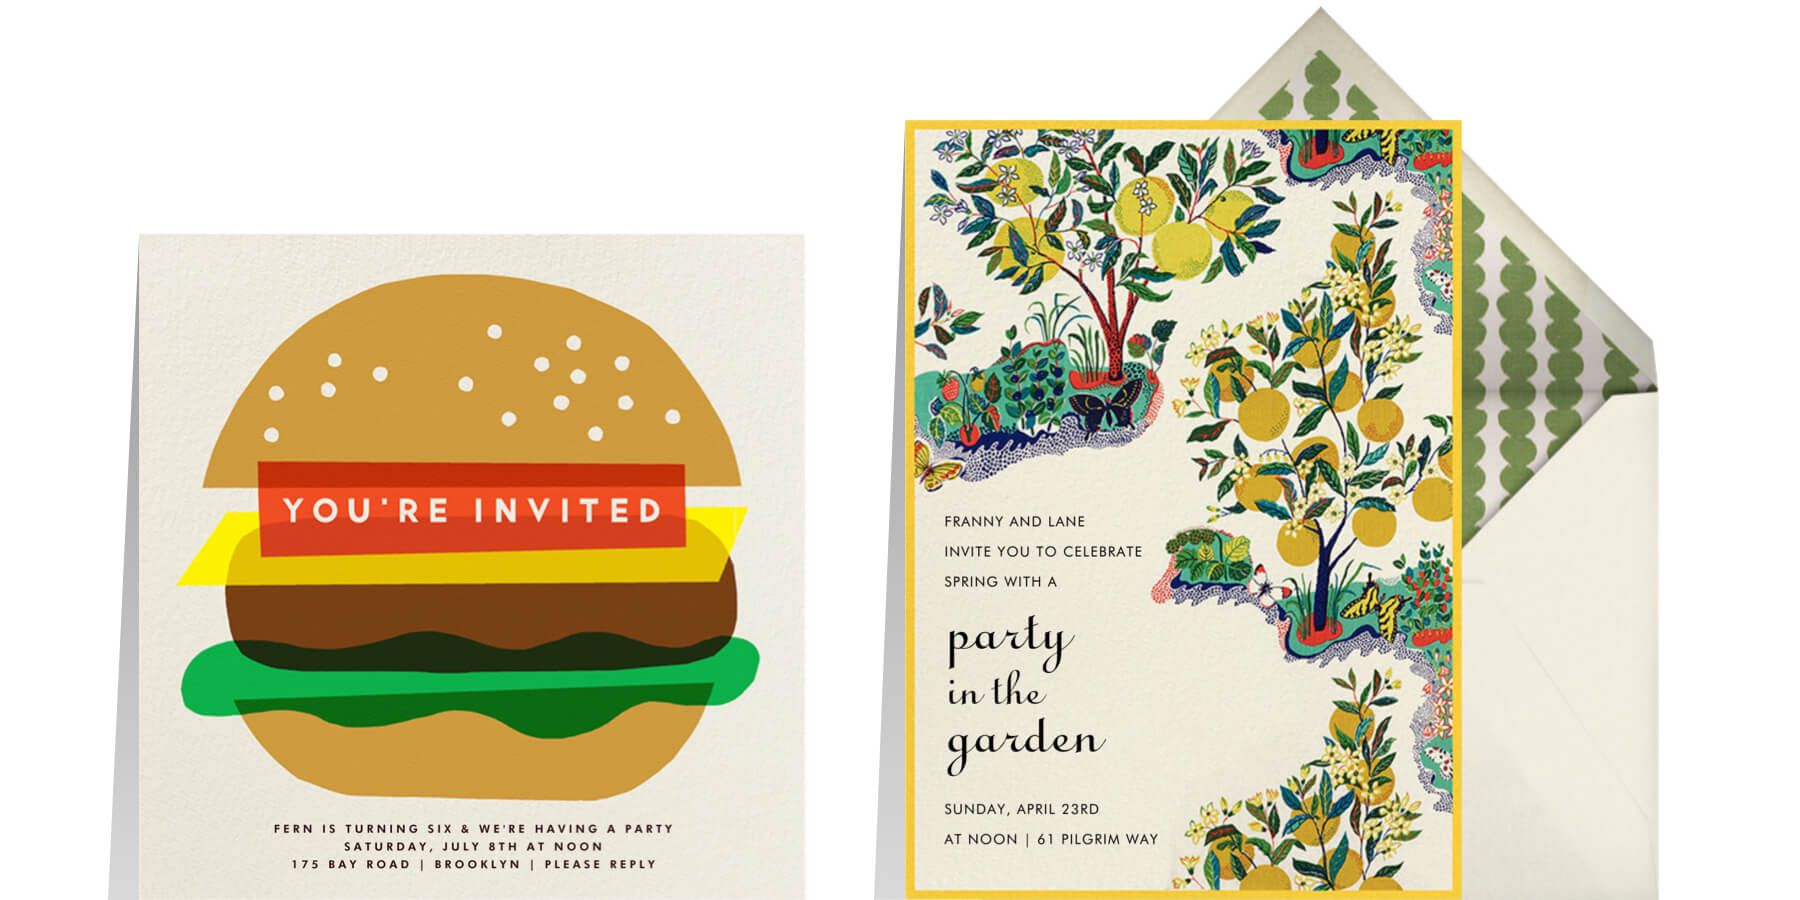 Left: Burger Beer by The Indigo Bunting for Paperless Post. Right: Exuberance by Schumacher for Paperless Post